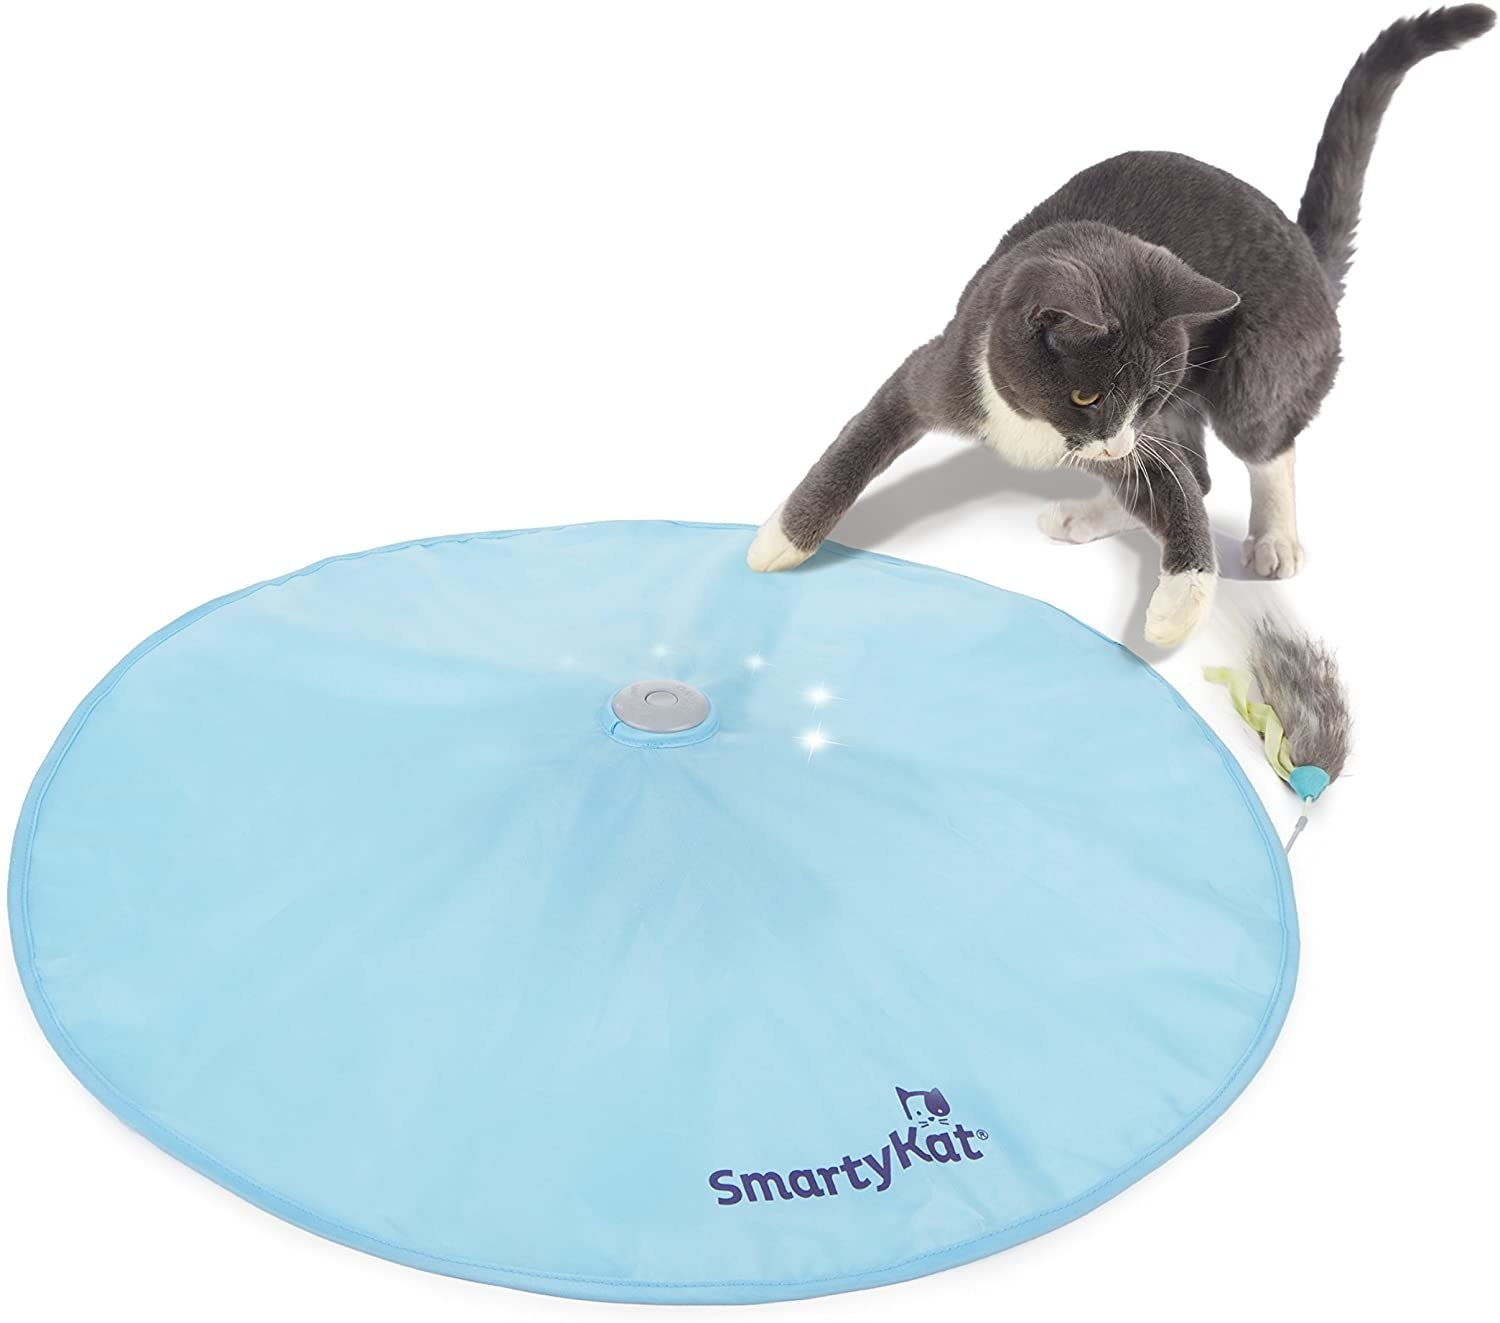 Cat playing with large, flat disk toy